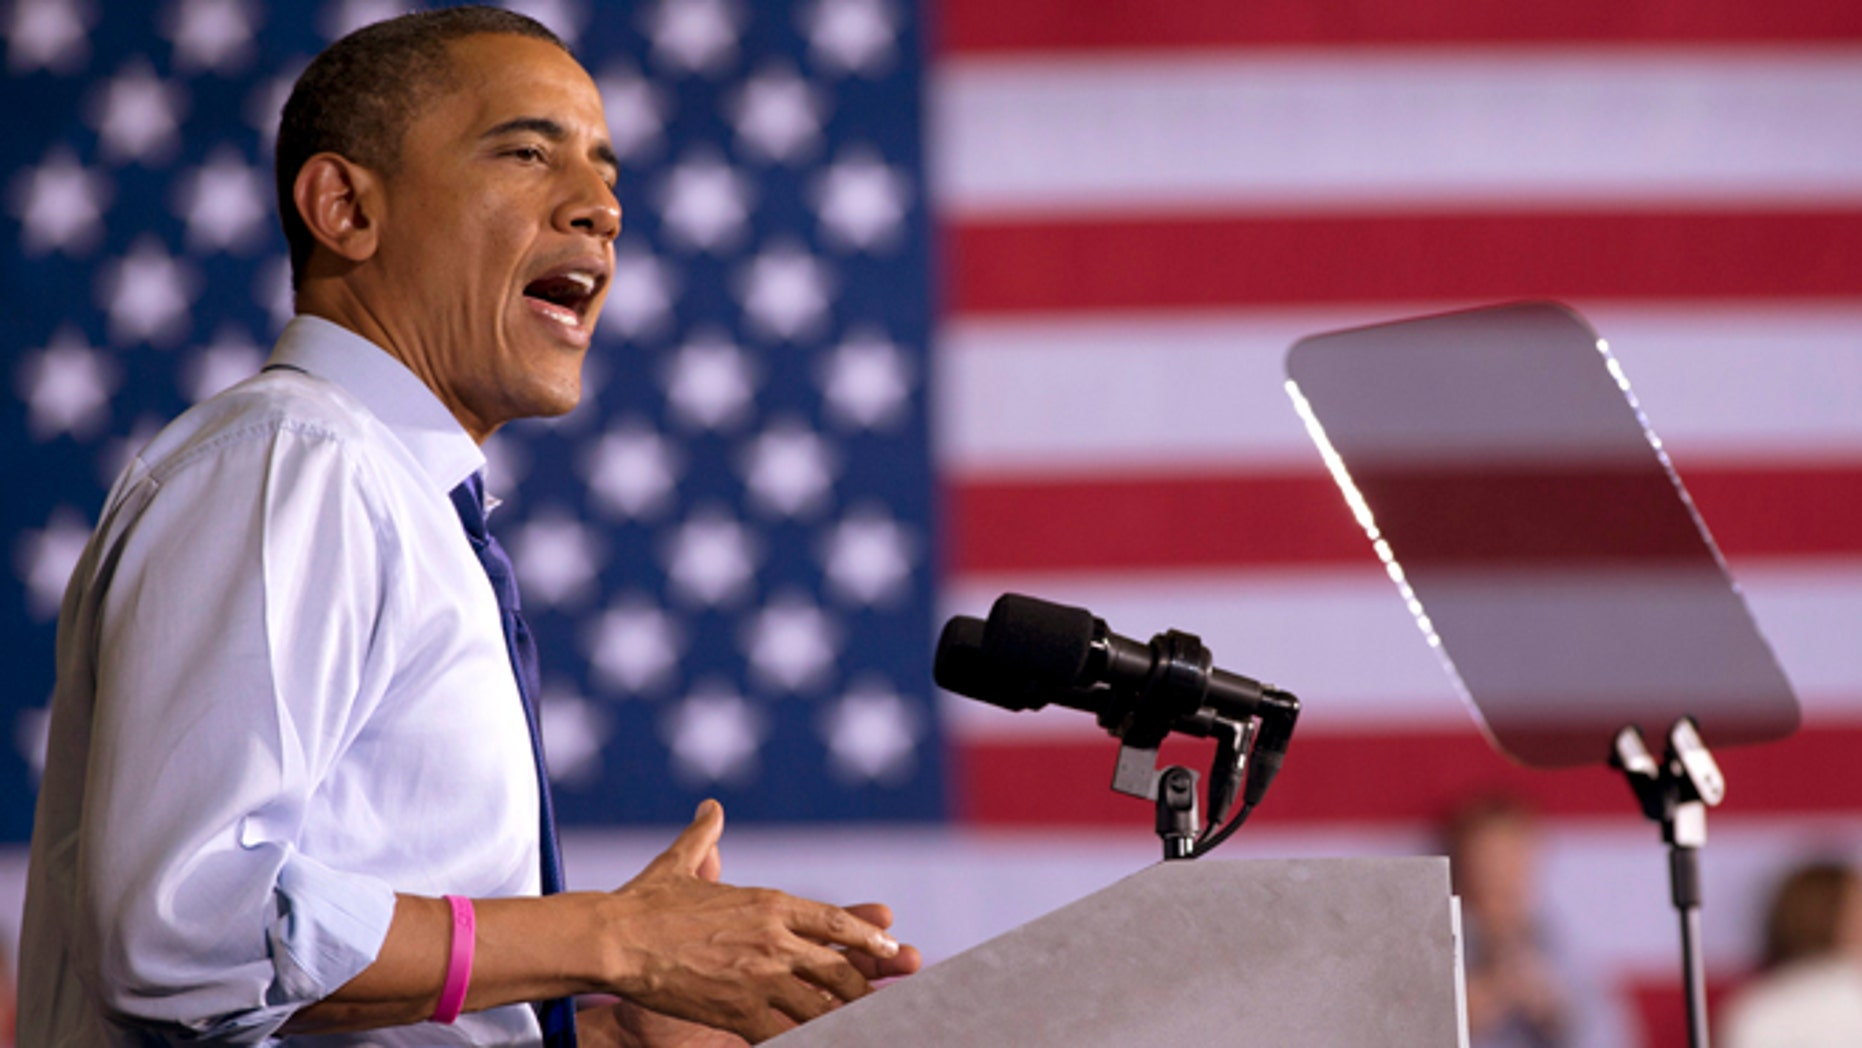 Oct. 17, 2012: President Barack Obama speaks at a campaign event at Cornell College in Mt. Vernon, Iowa.